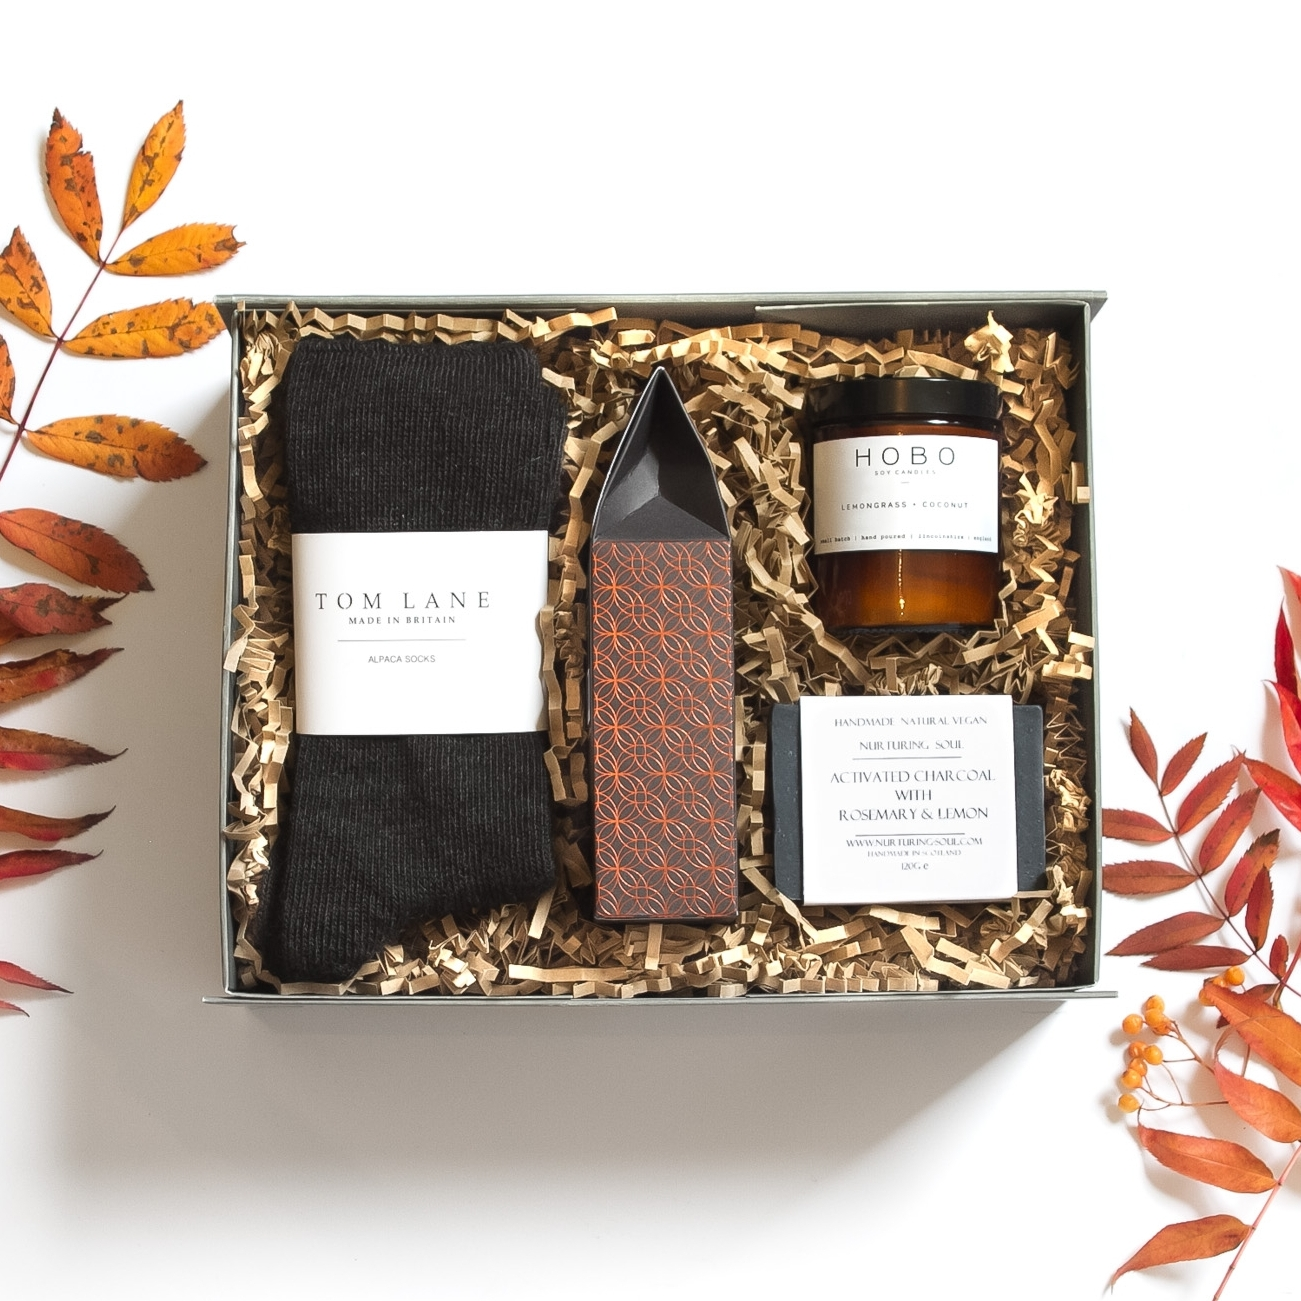 The Hygge Moment, £50